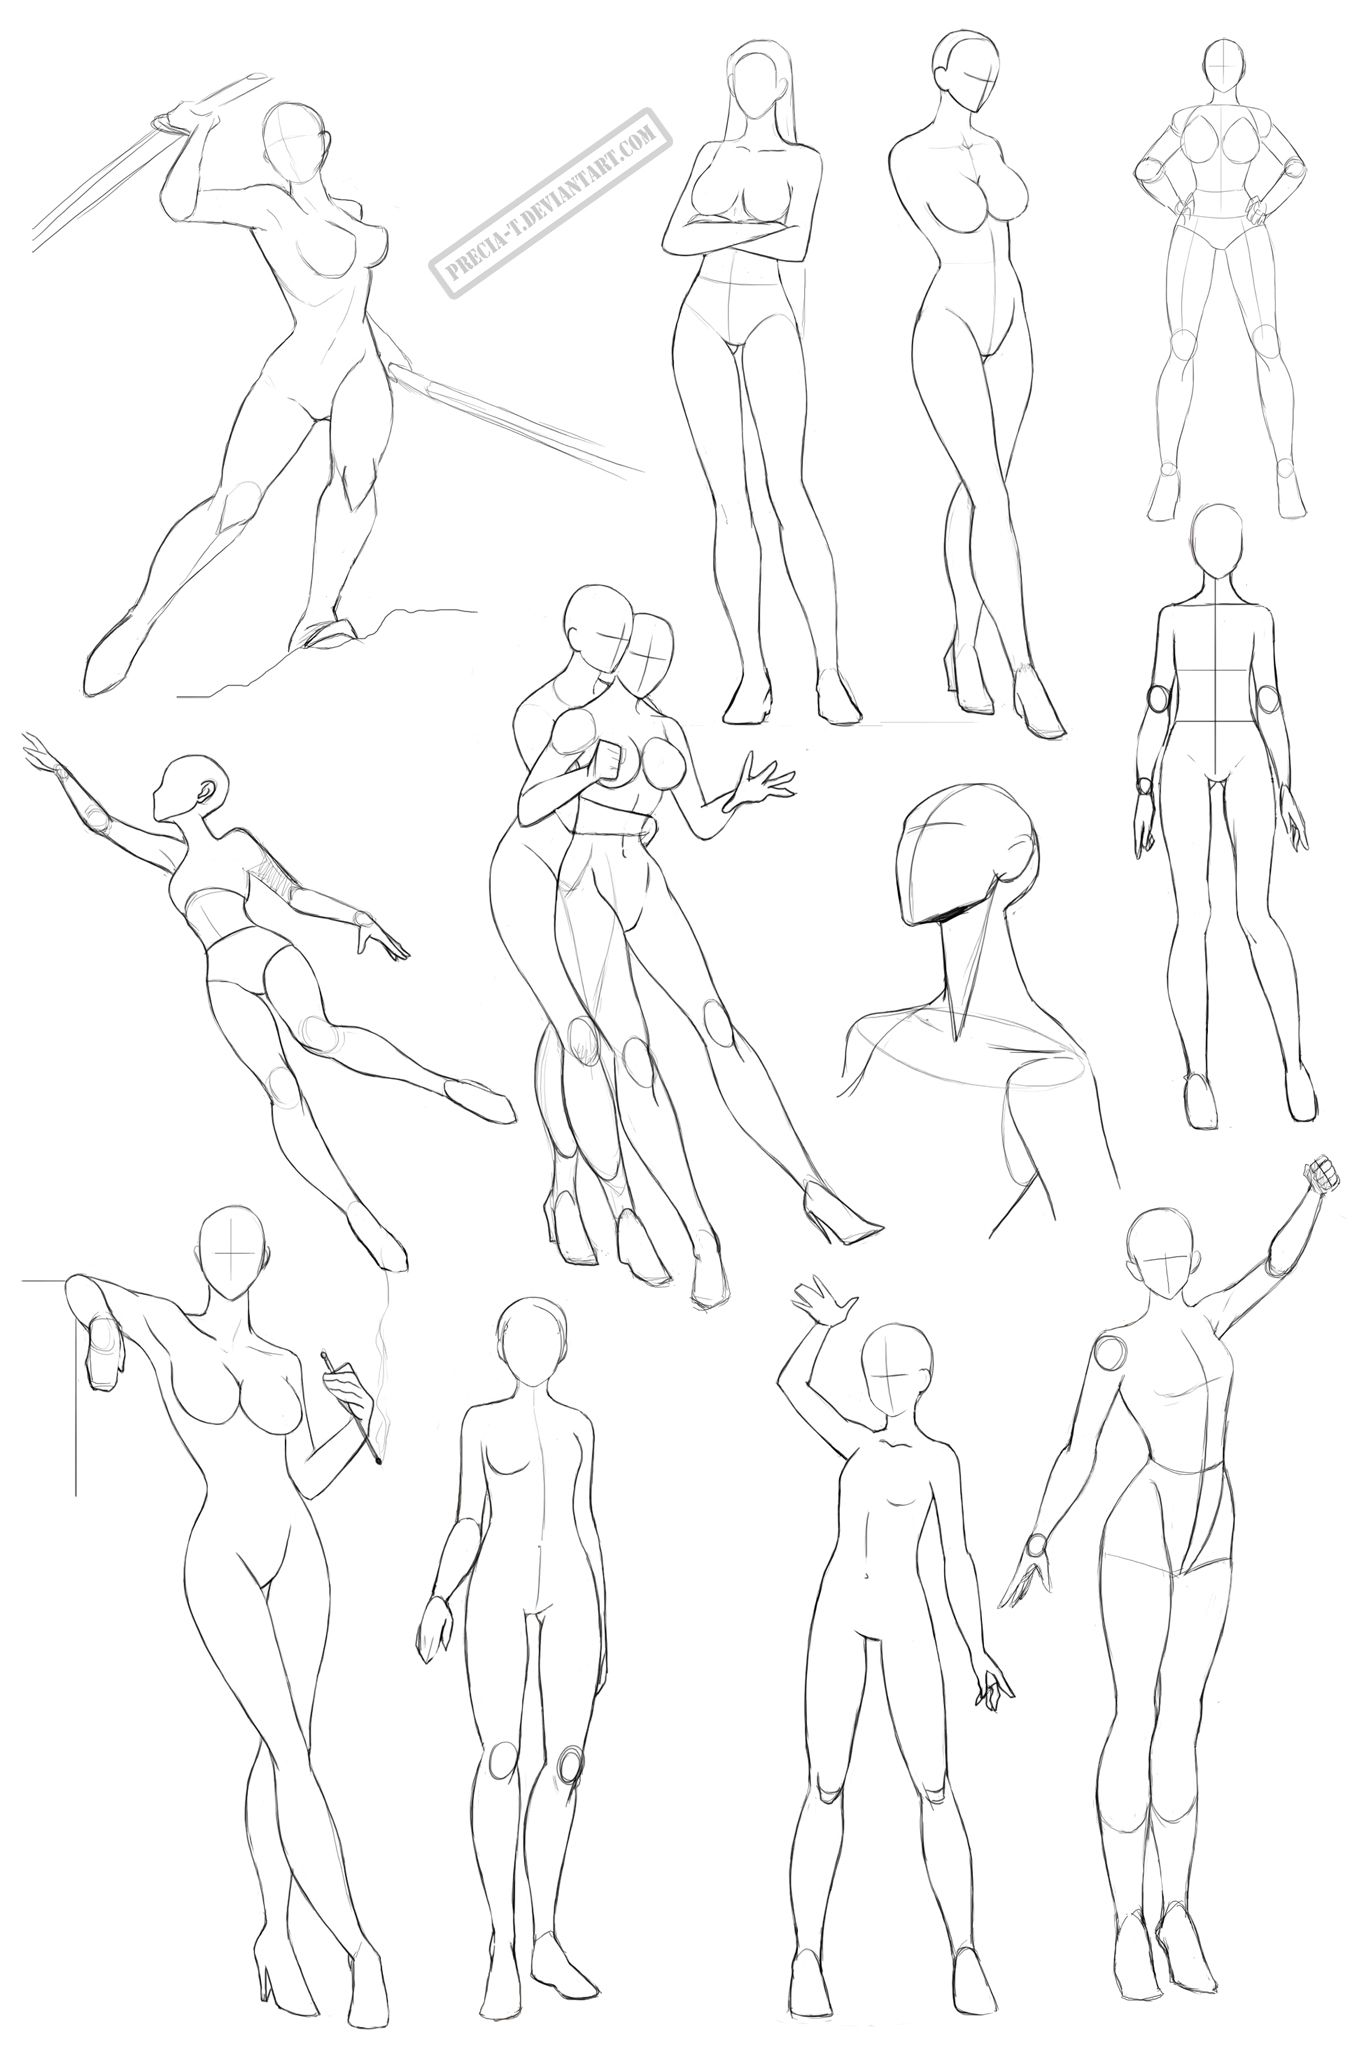 Female anatomy 2 by Precia-T.deviantart.com on @deviantART | Drawing ...